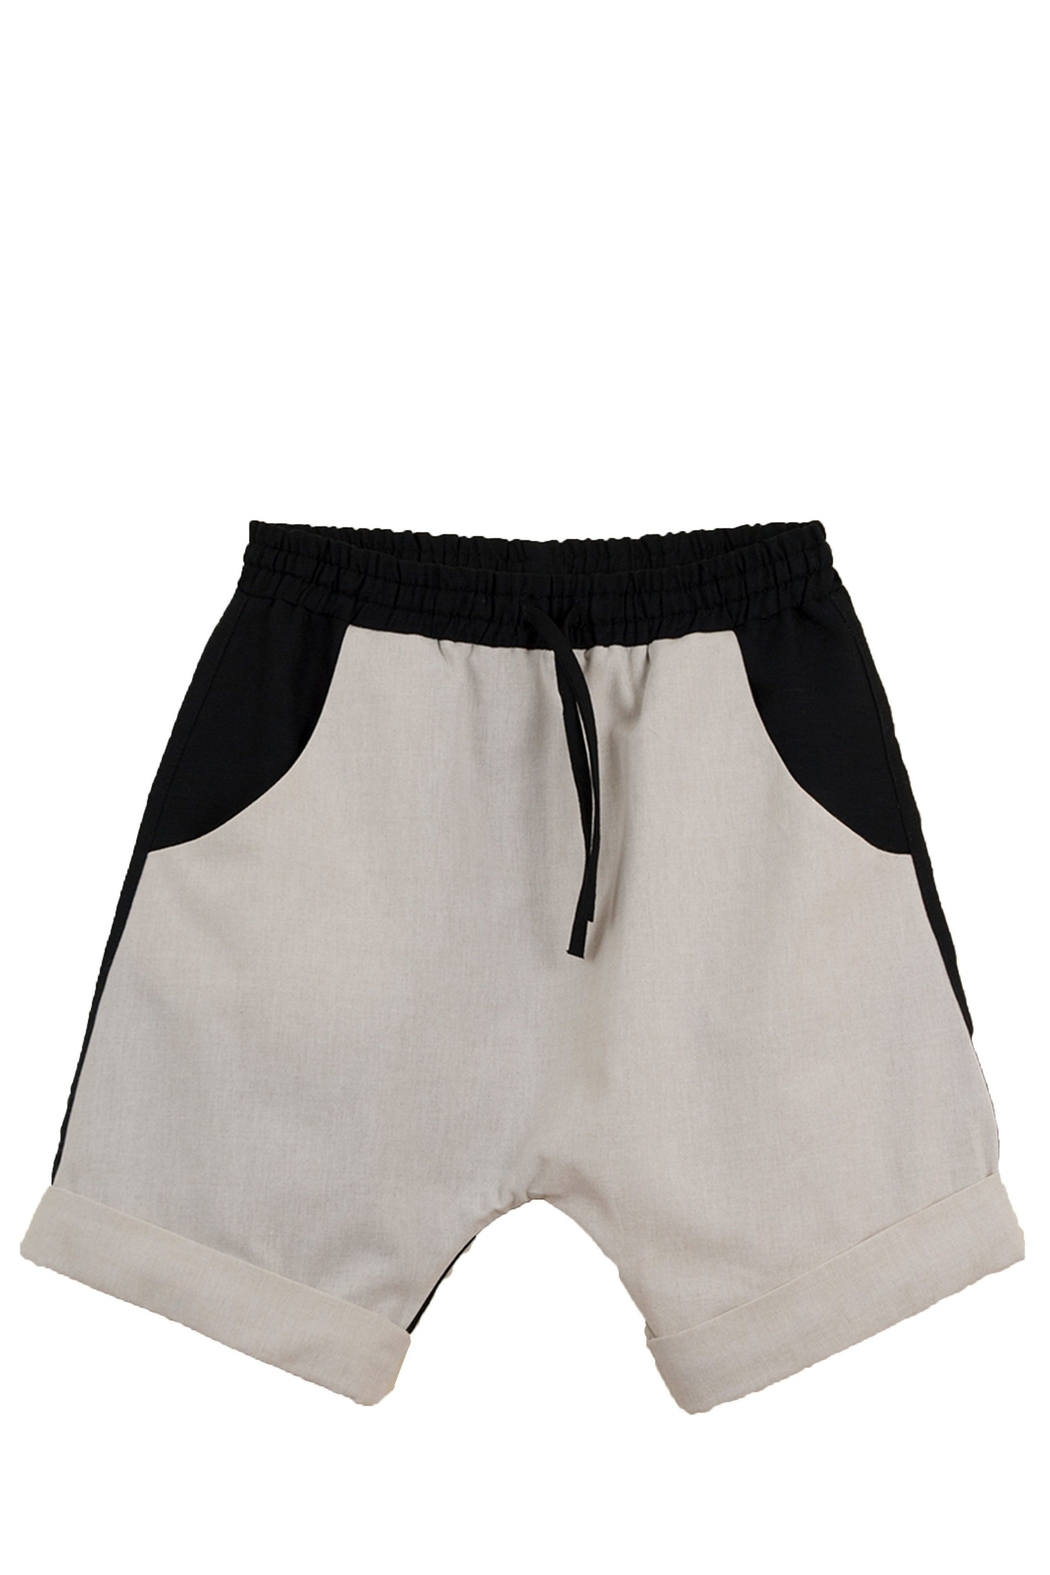 Popelin Boys Two Tone Bermuda Shorts - Front Cropped Image